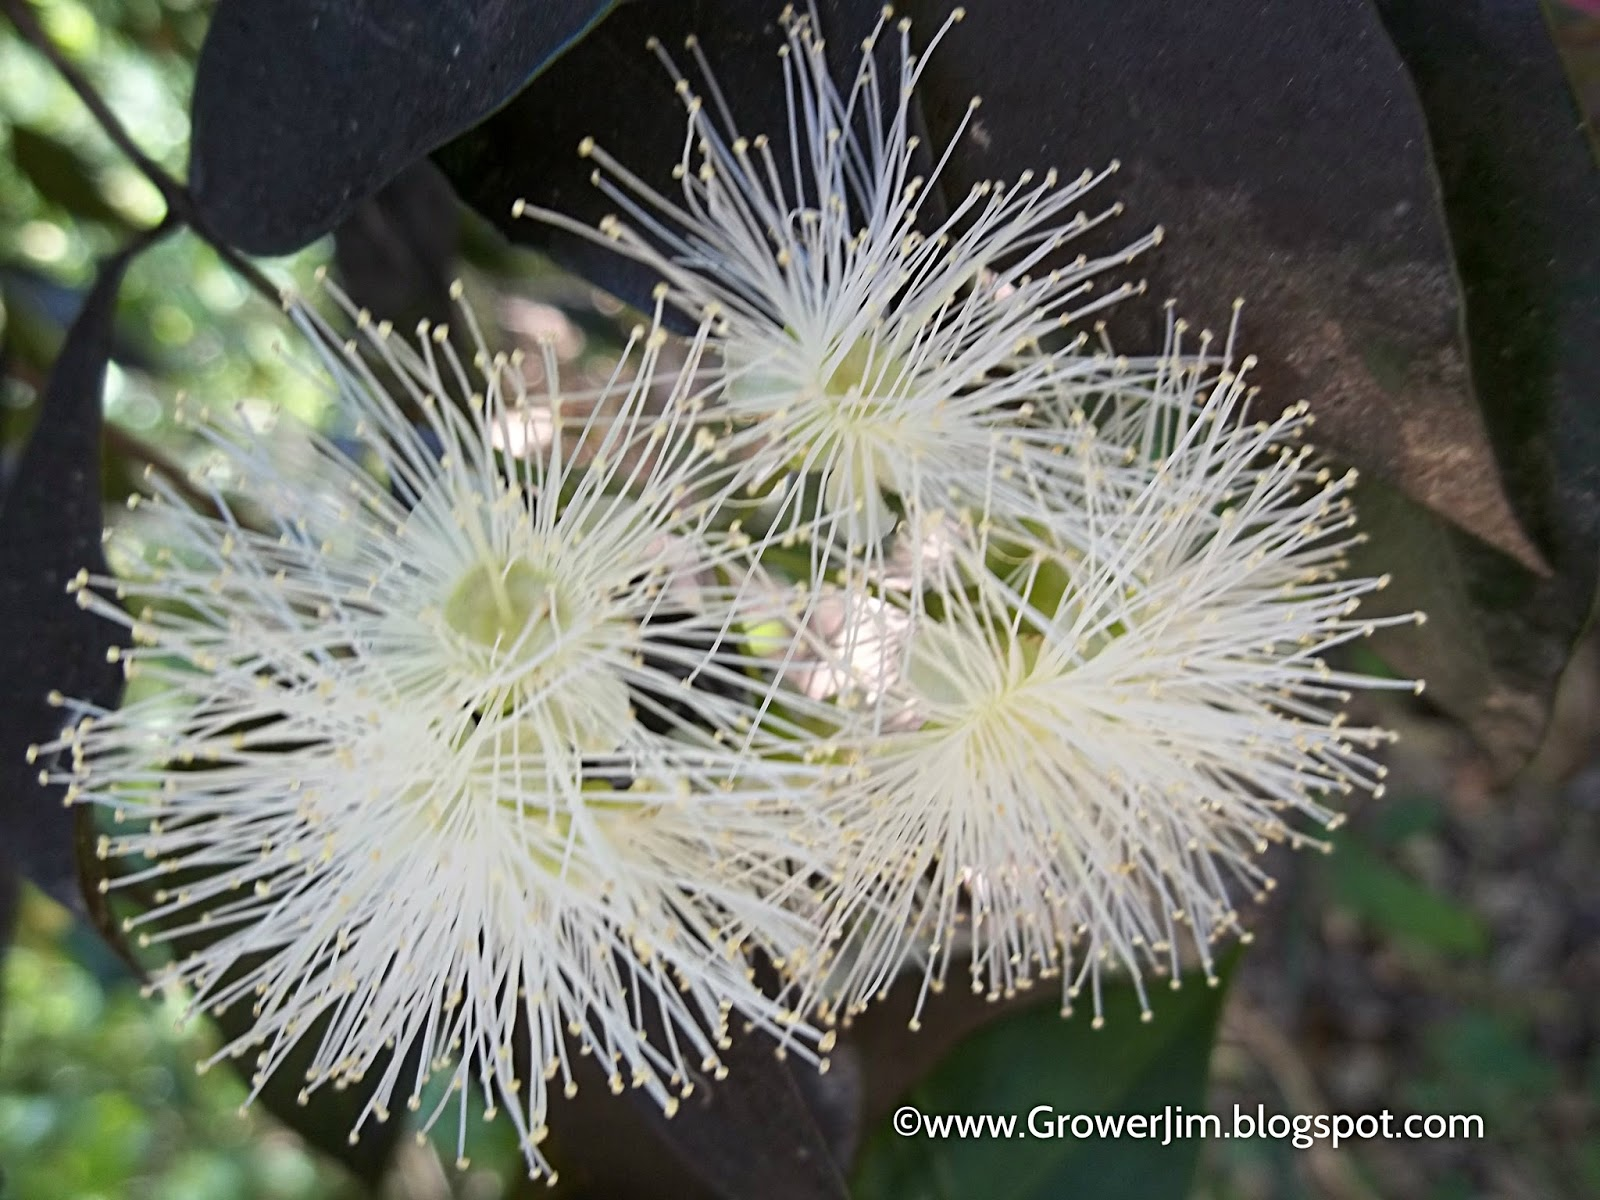 Garden Adventures: Syzygium Smithii (Lilly Pilly